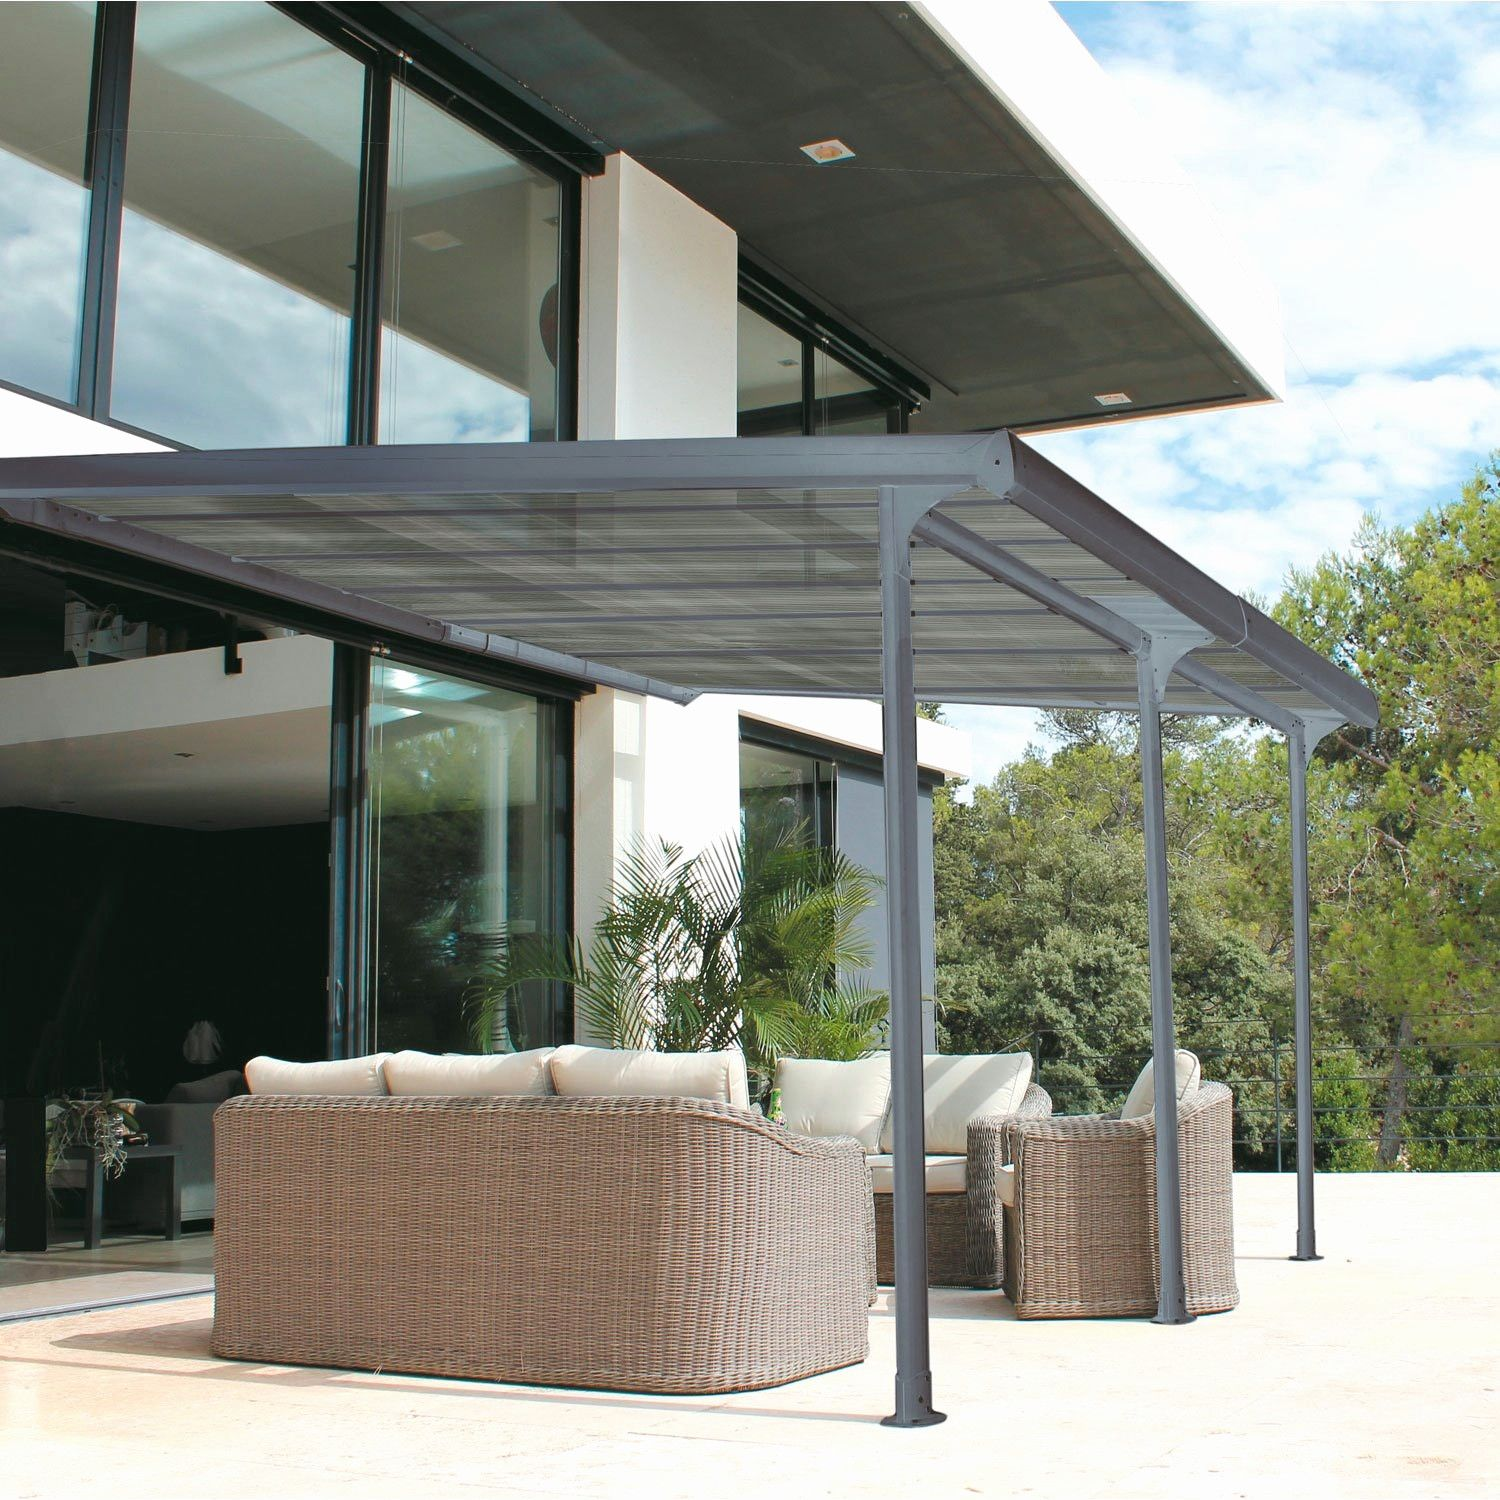 Inspirational Pergola Bioclimatique En Kit Leroy Merlin Pergola Backyard Pergola Pergola Shade